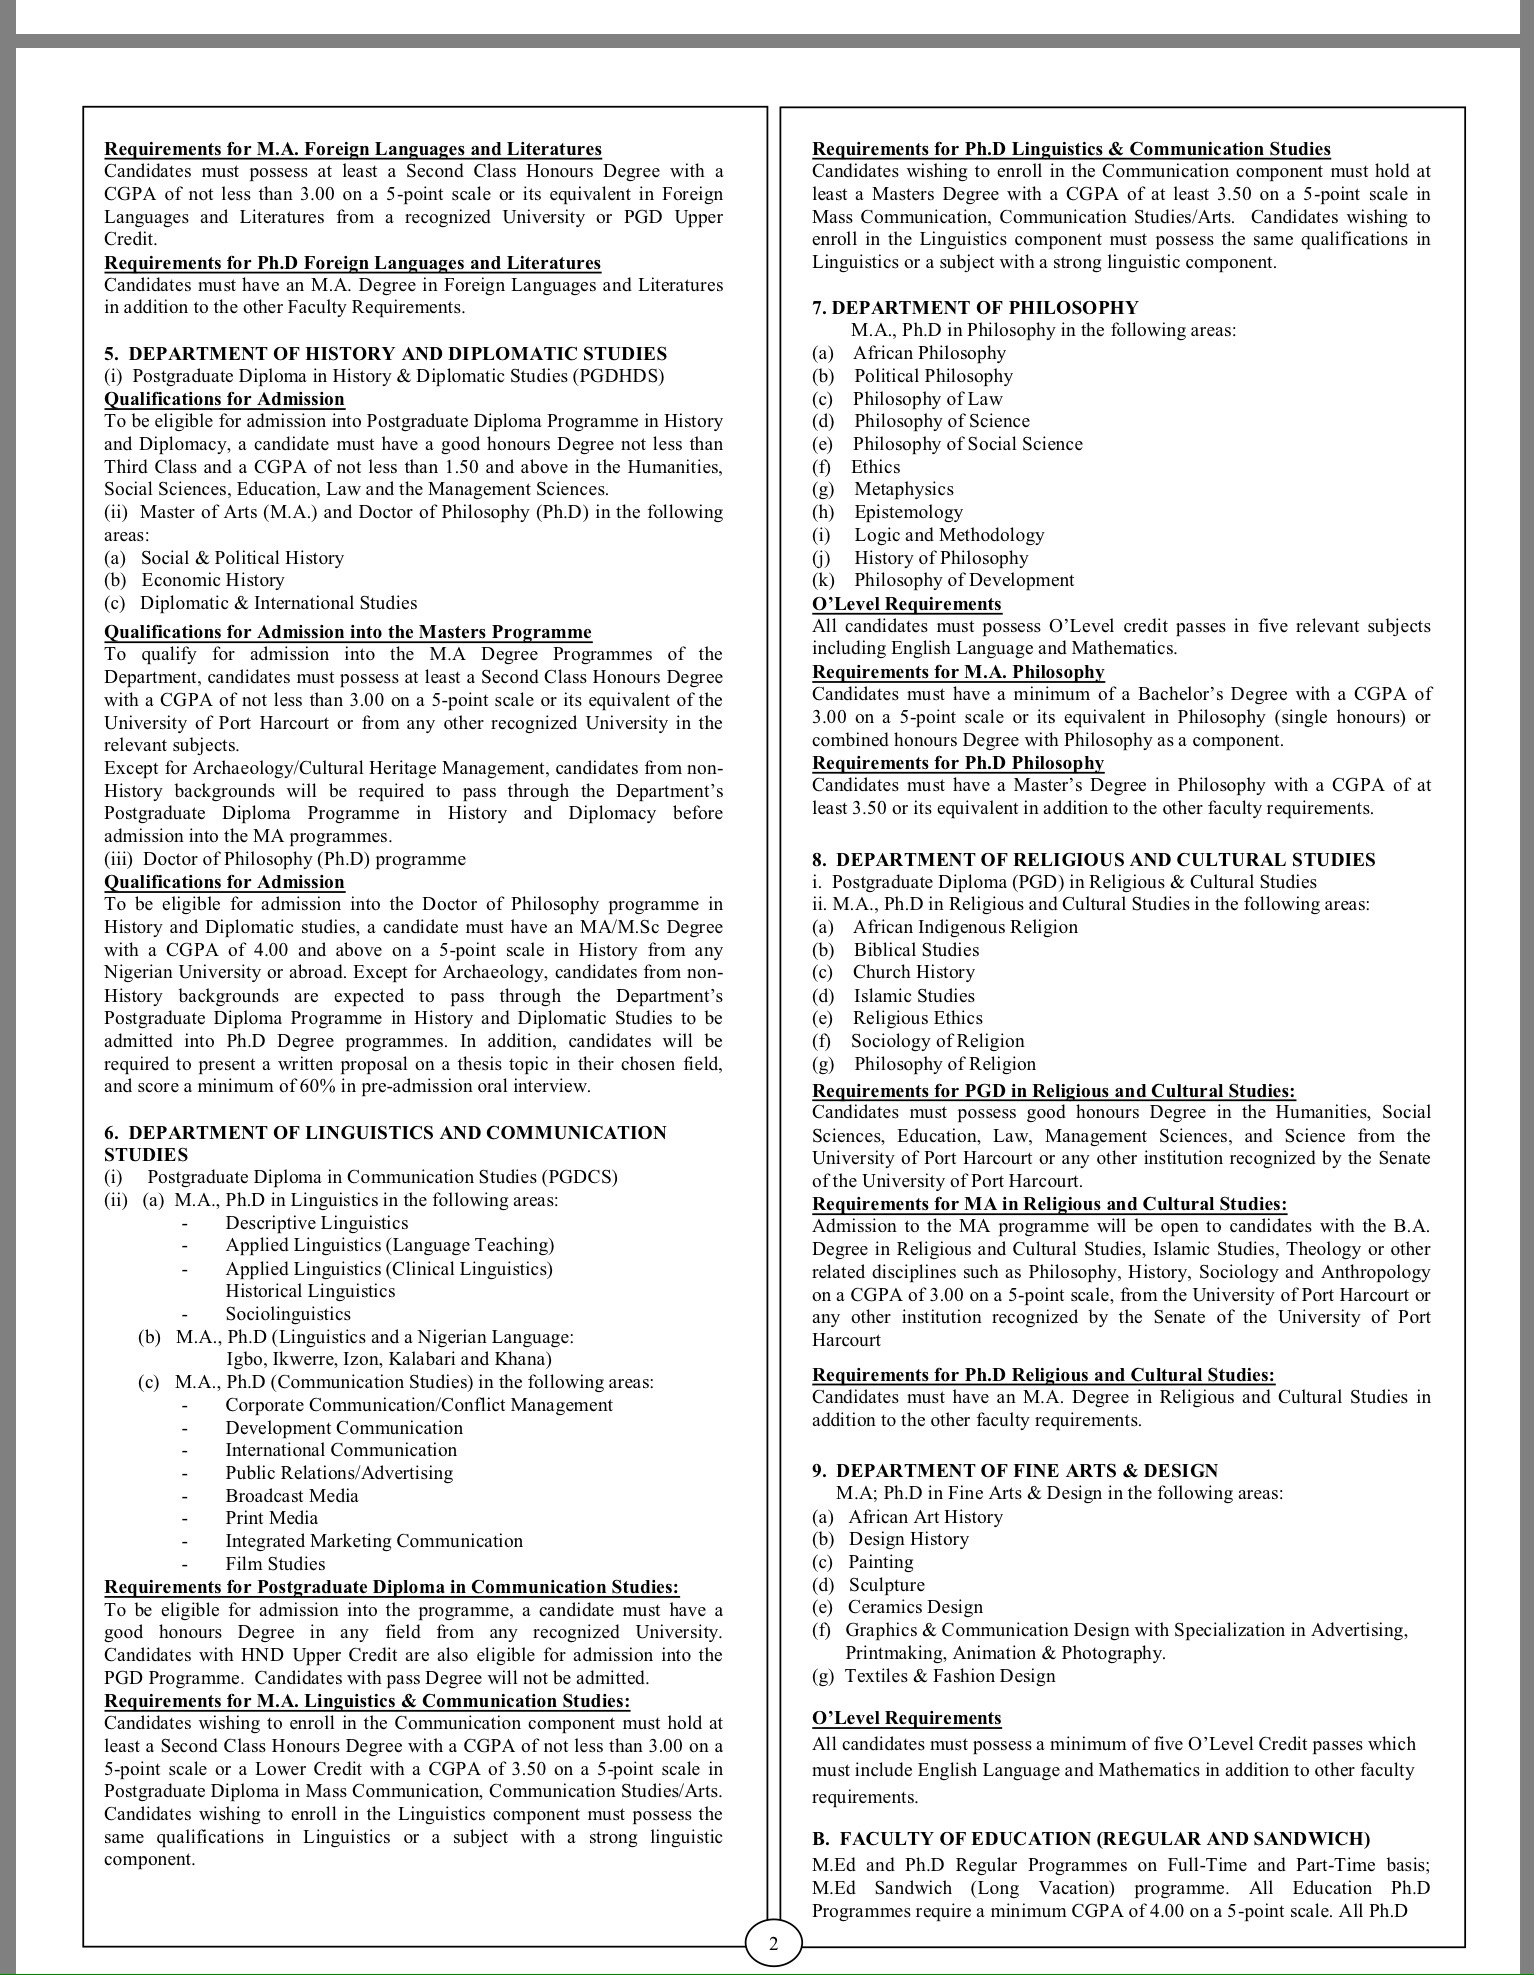 UNIPORT Postgraduate courses and Requirements